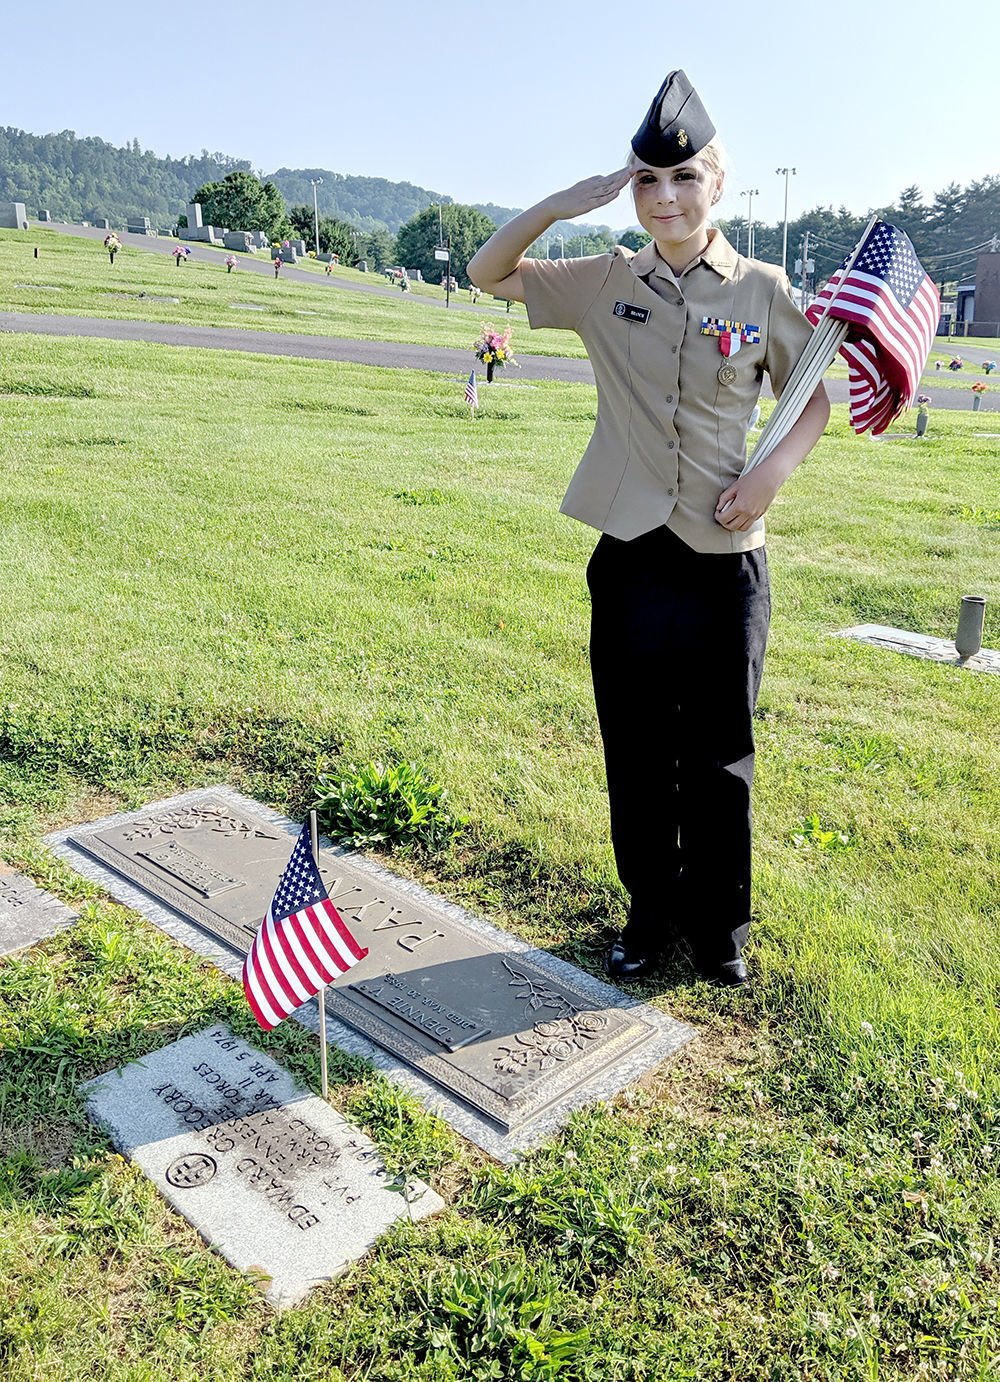 Showing respect and love for deceased Veterans